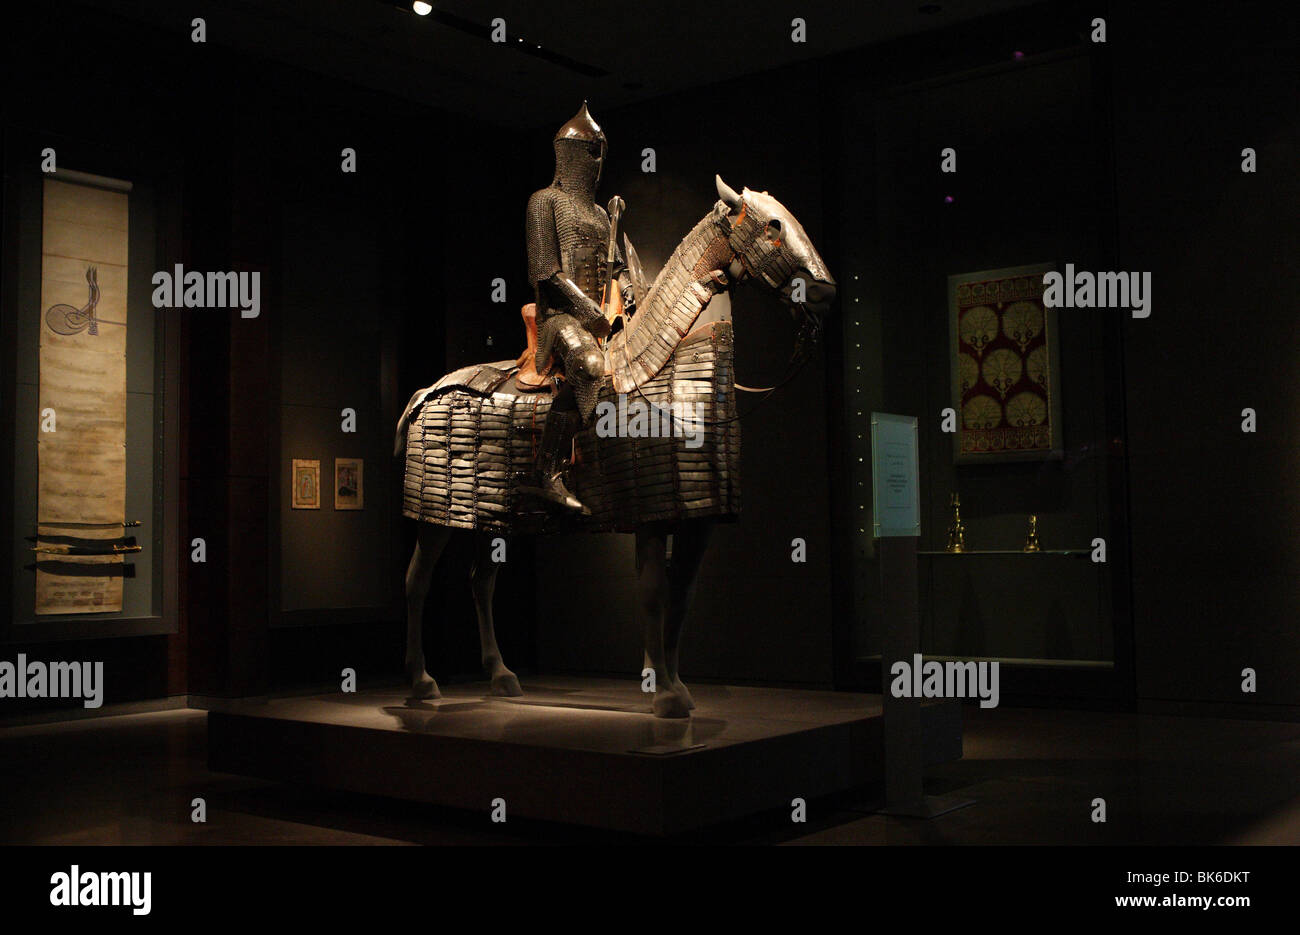 Sculpture of amoured knight on horse in the Museum of Islamic Art (MIA) in Doha,Qatar - Stock Image